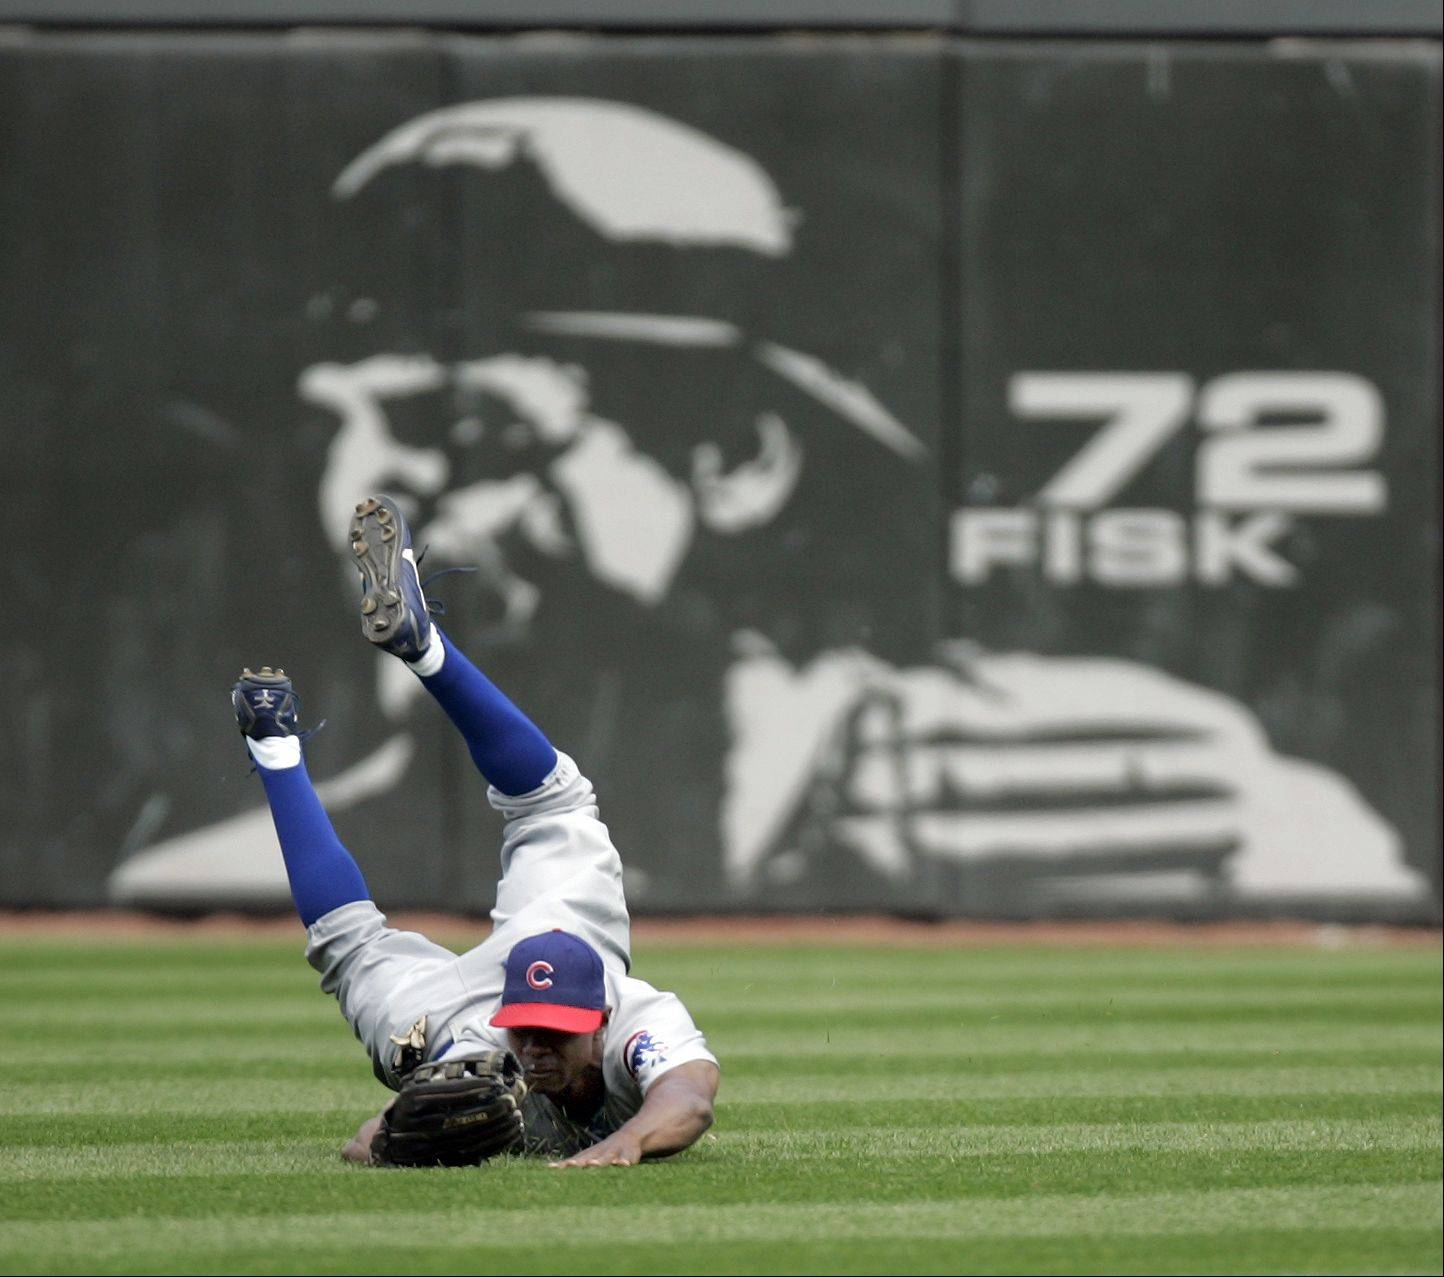 Cubs Juan Pierre makes a diving catch on a Joe Crede fly in the 6th inning Game Two Chicago White Sox Vs Chicago Cubs at U.S. Cellular Field in Chicago. May 20, 2005.